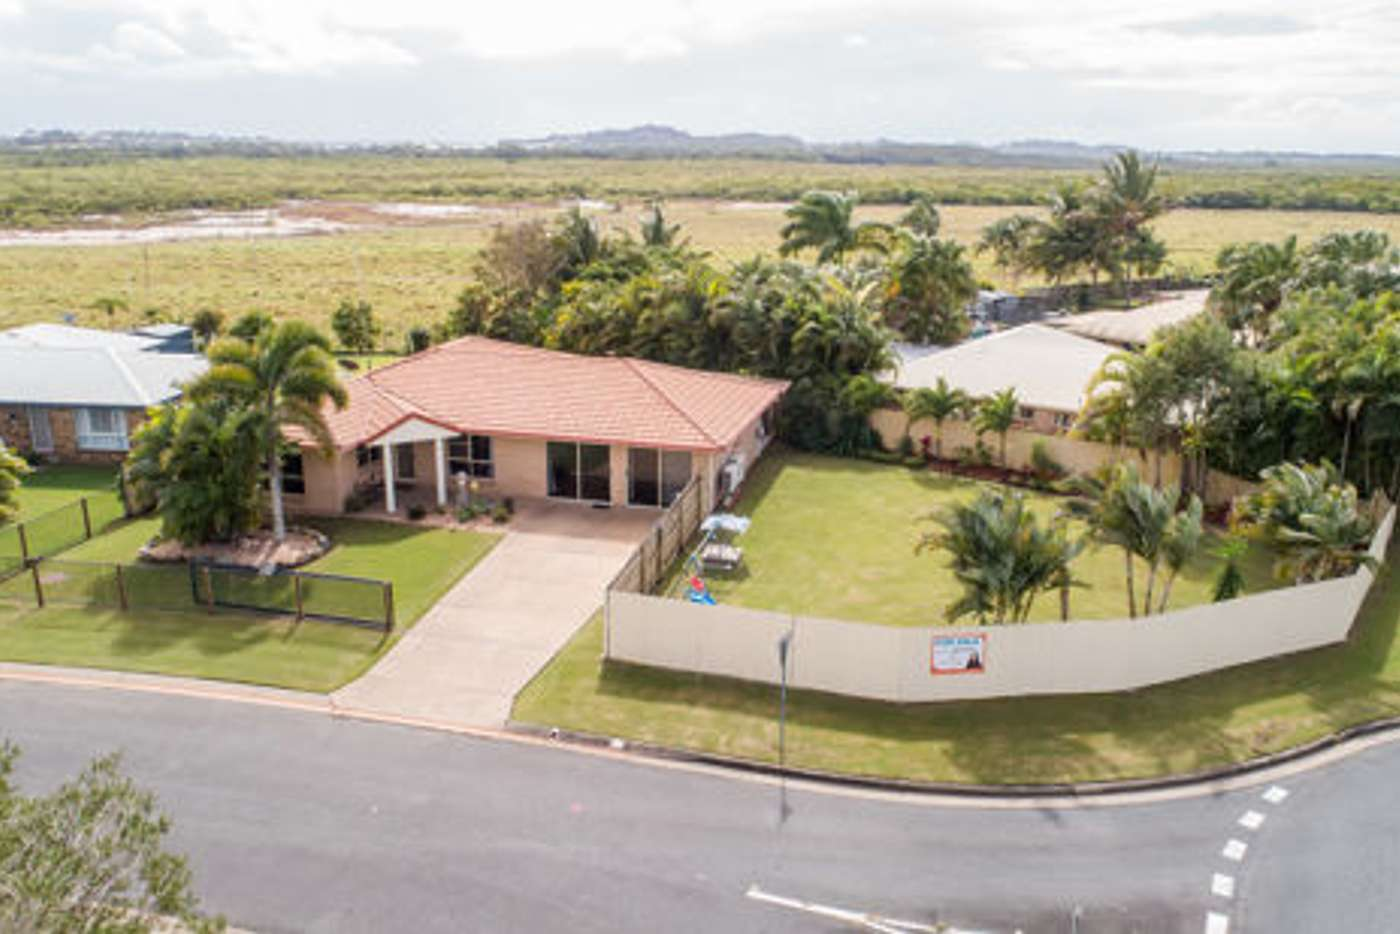 Main view of Homely house listing, 29 Caledonian Drive, Beaconsfield QLD 4740